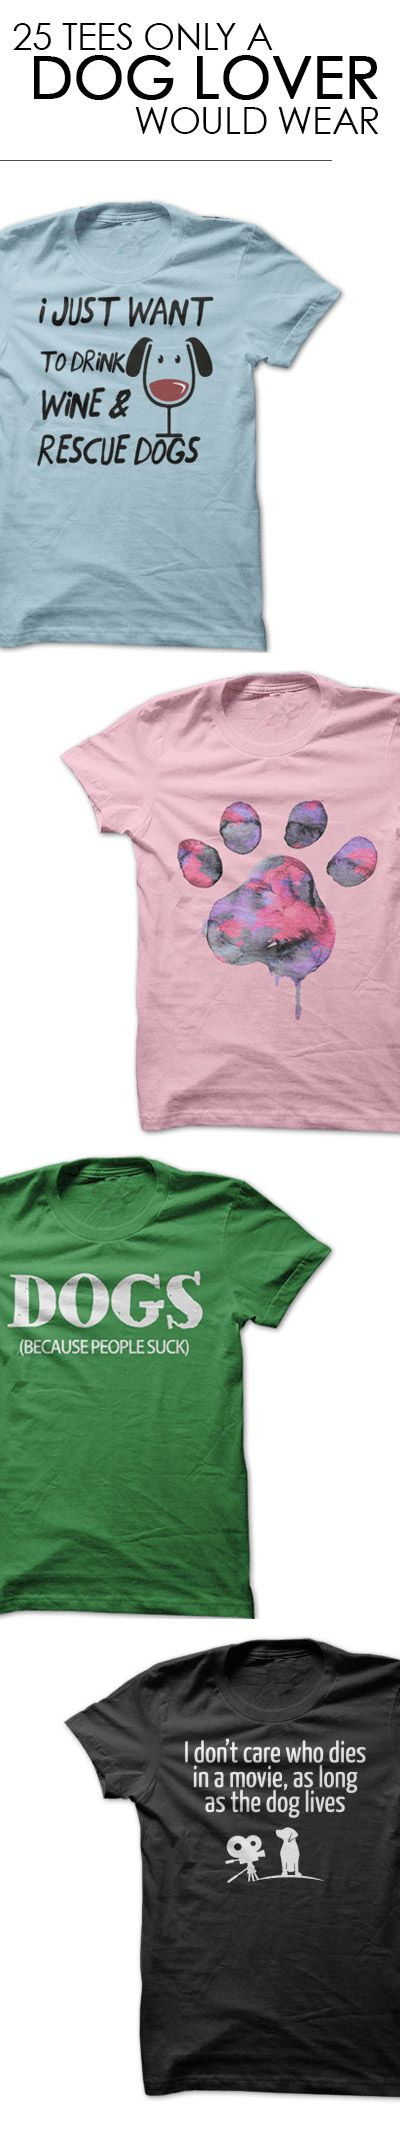 Love these tees! Every purchase gives 7 meals to a shelter dog. http://iheartdogs.com/product-category/t-shirts/?utm_source=PinterestNetwork_25TeesDogLovers&utm_medium=link&utm_campaign=PinterestNetwork_25TeesDogLovers